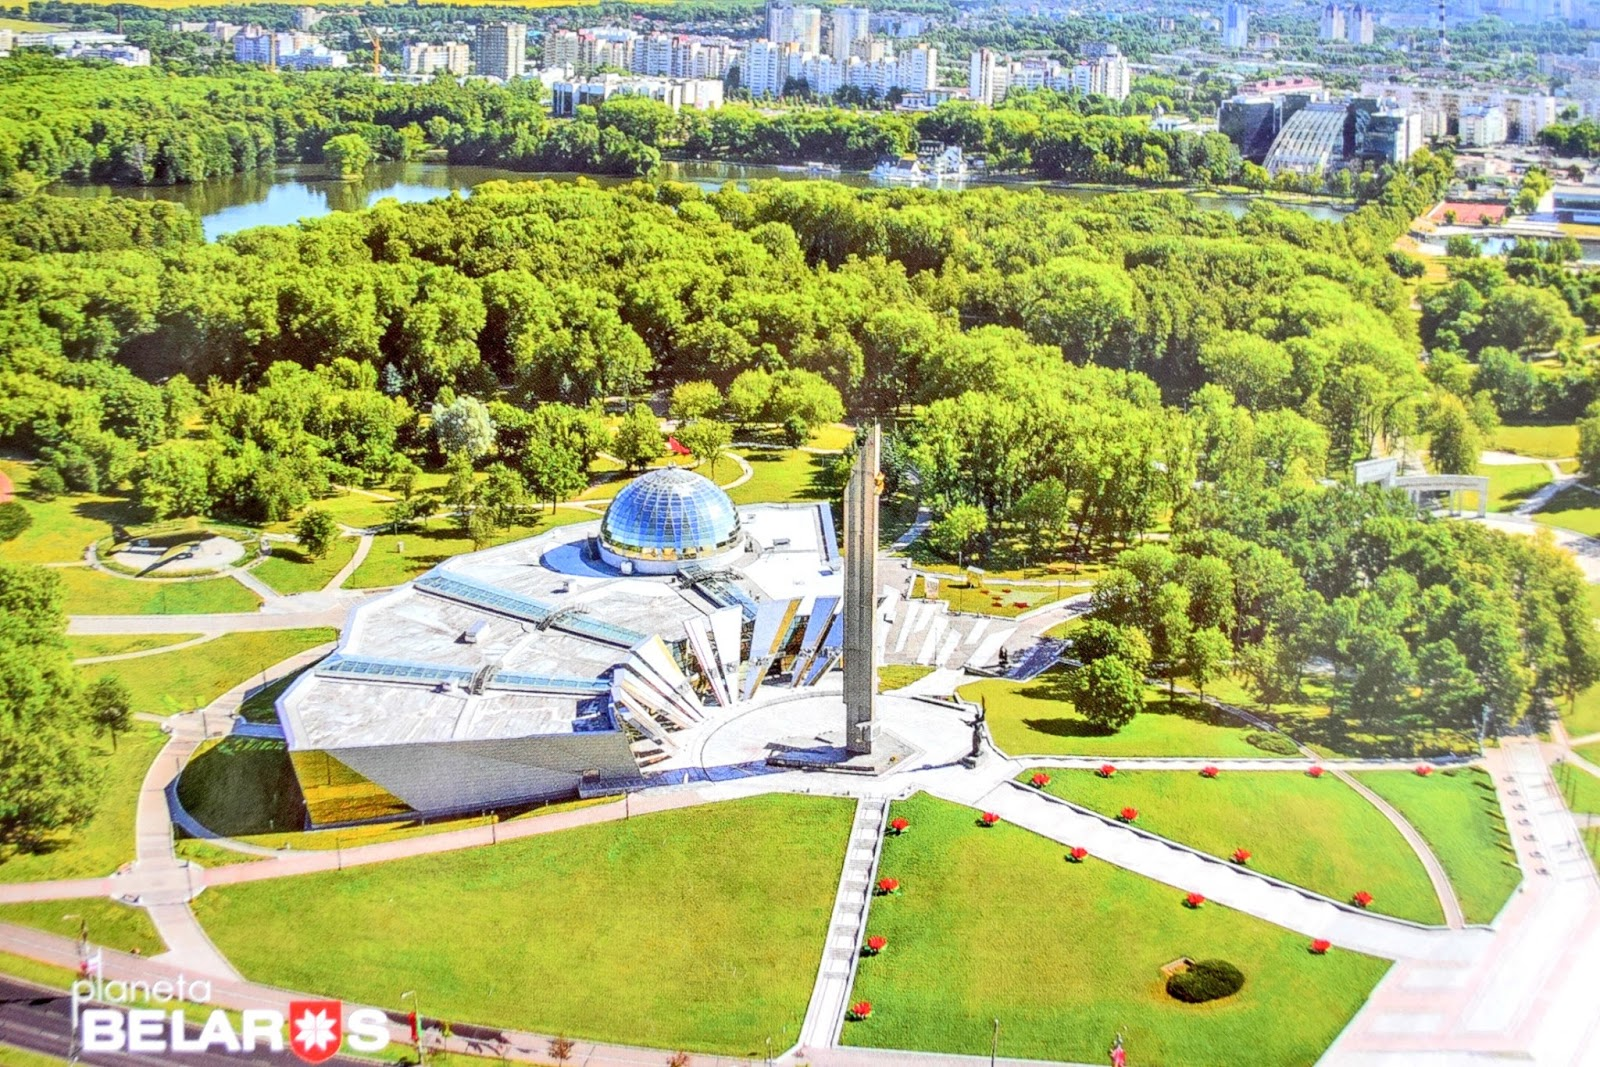 Belarusian state museum of the great patriotic war.